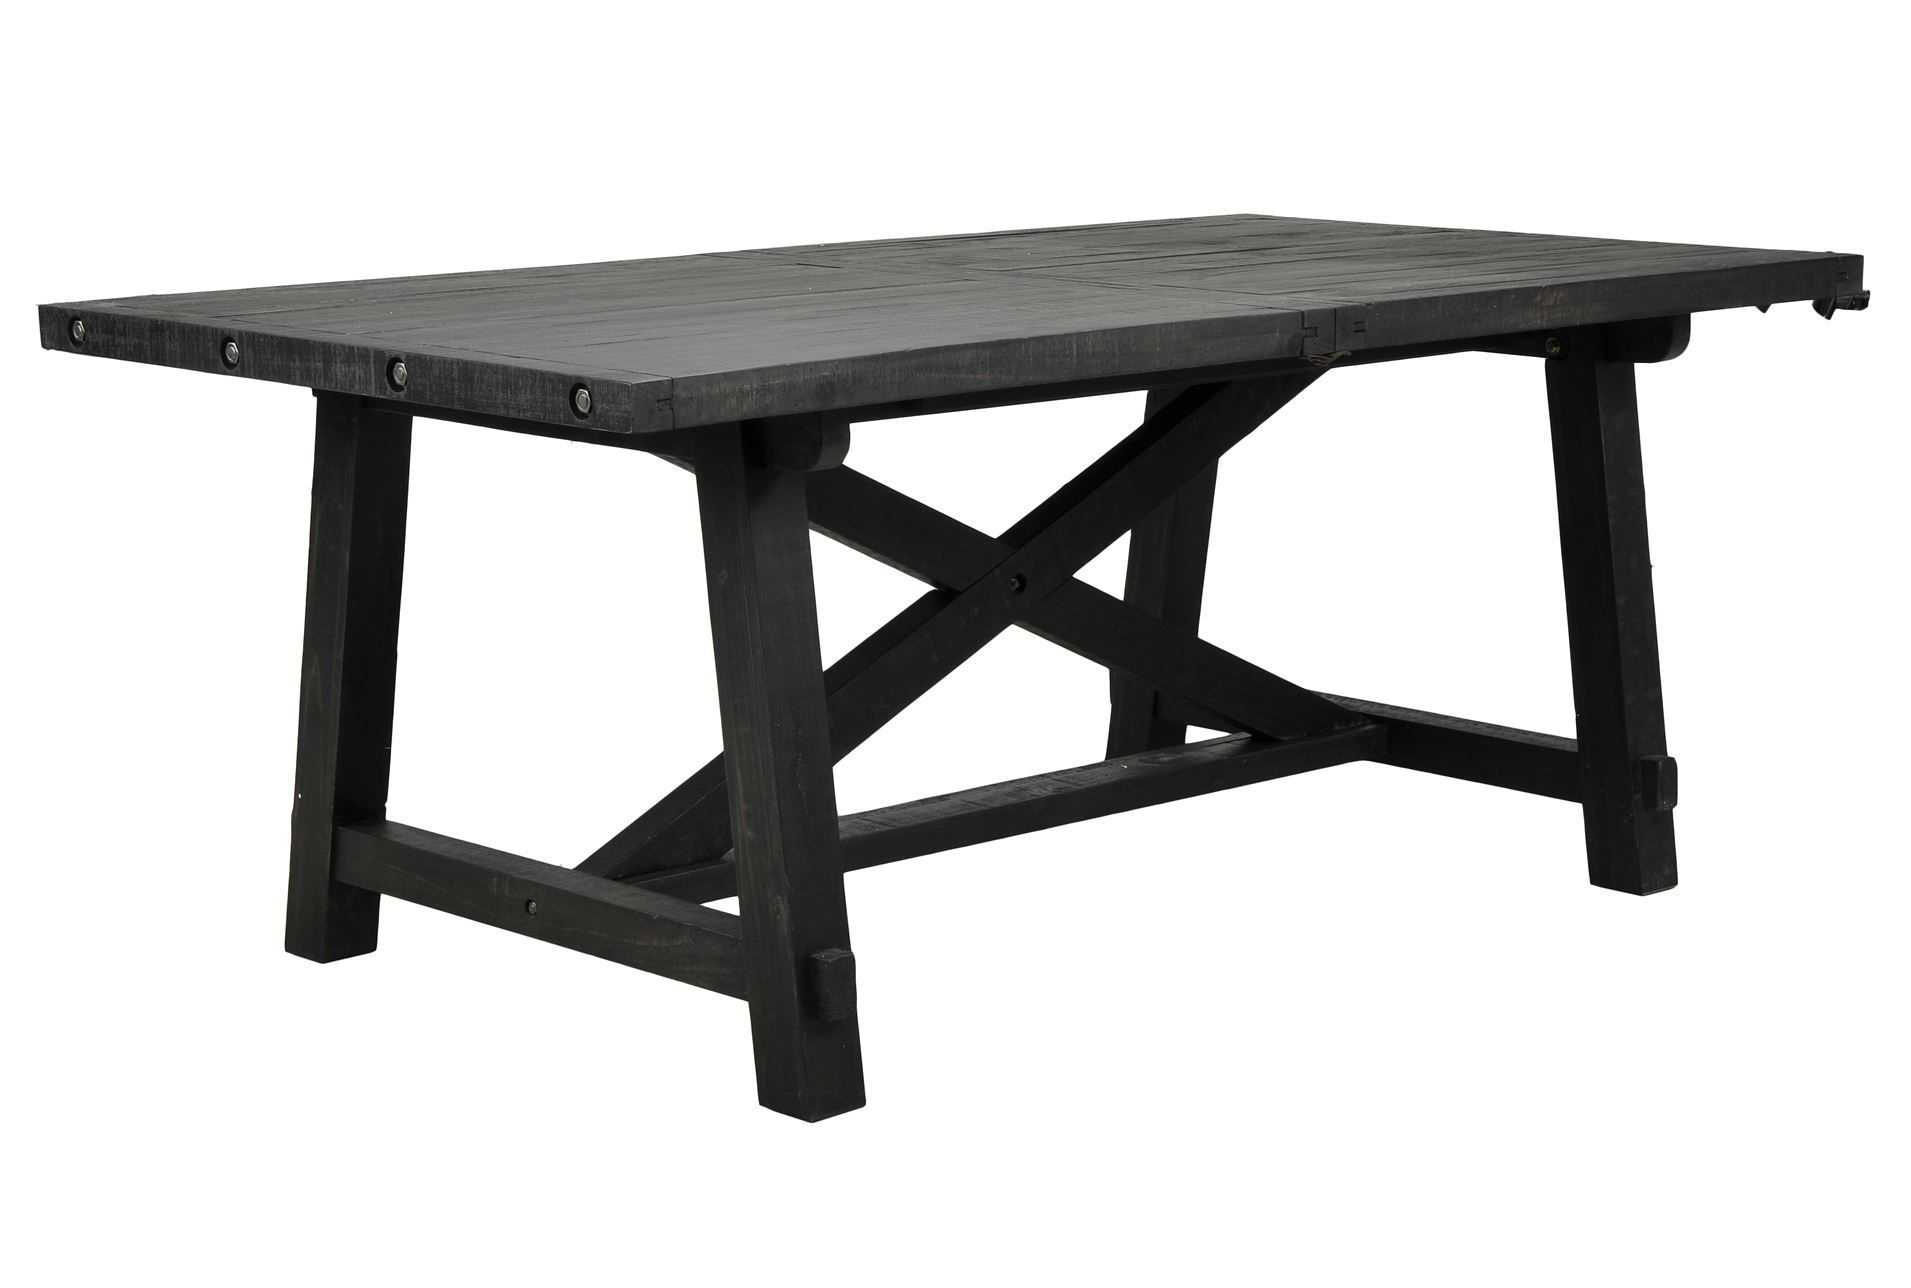 Jaxon Extension Rectangle Dining Table, Café | Rectangle Dining In Most Current Jaxon Extension Rectangle Dining Tables (Image 14 of 20)